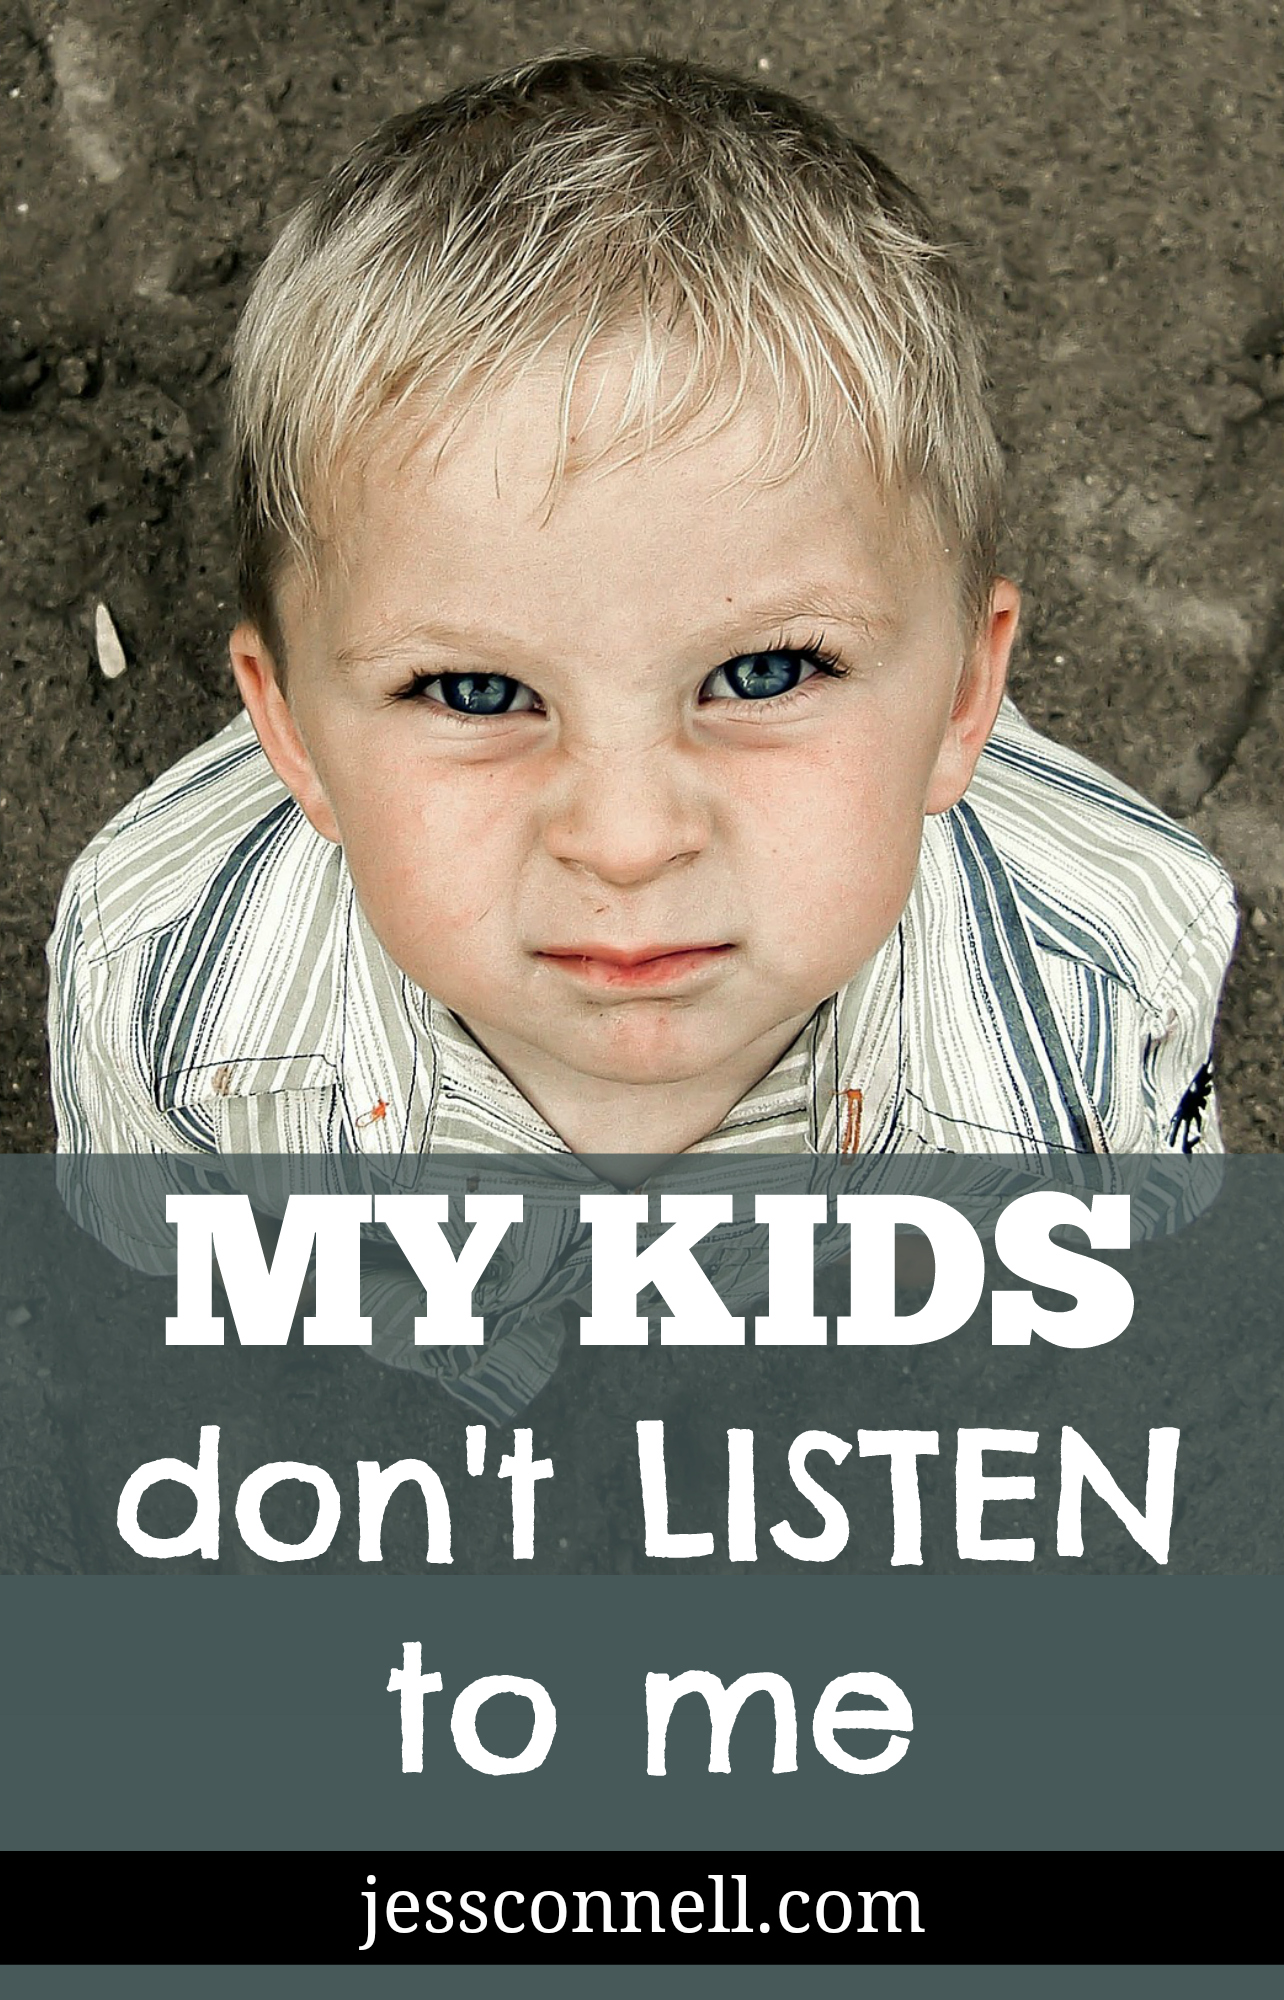 My Kids Don't Listen to Me // jessconnell.com